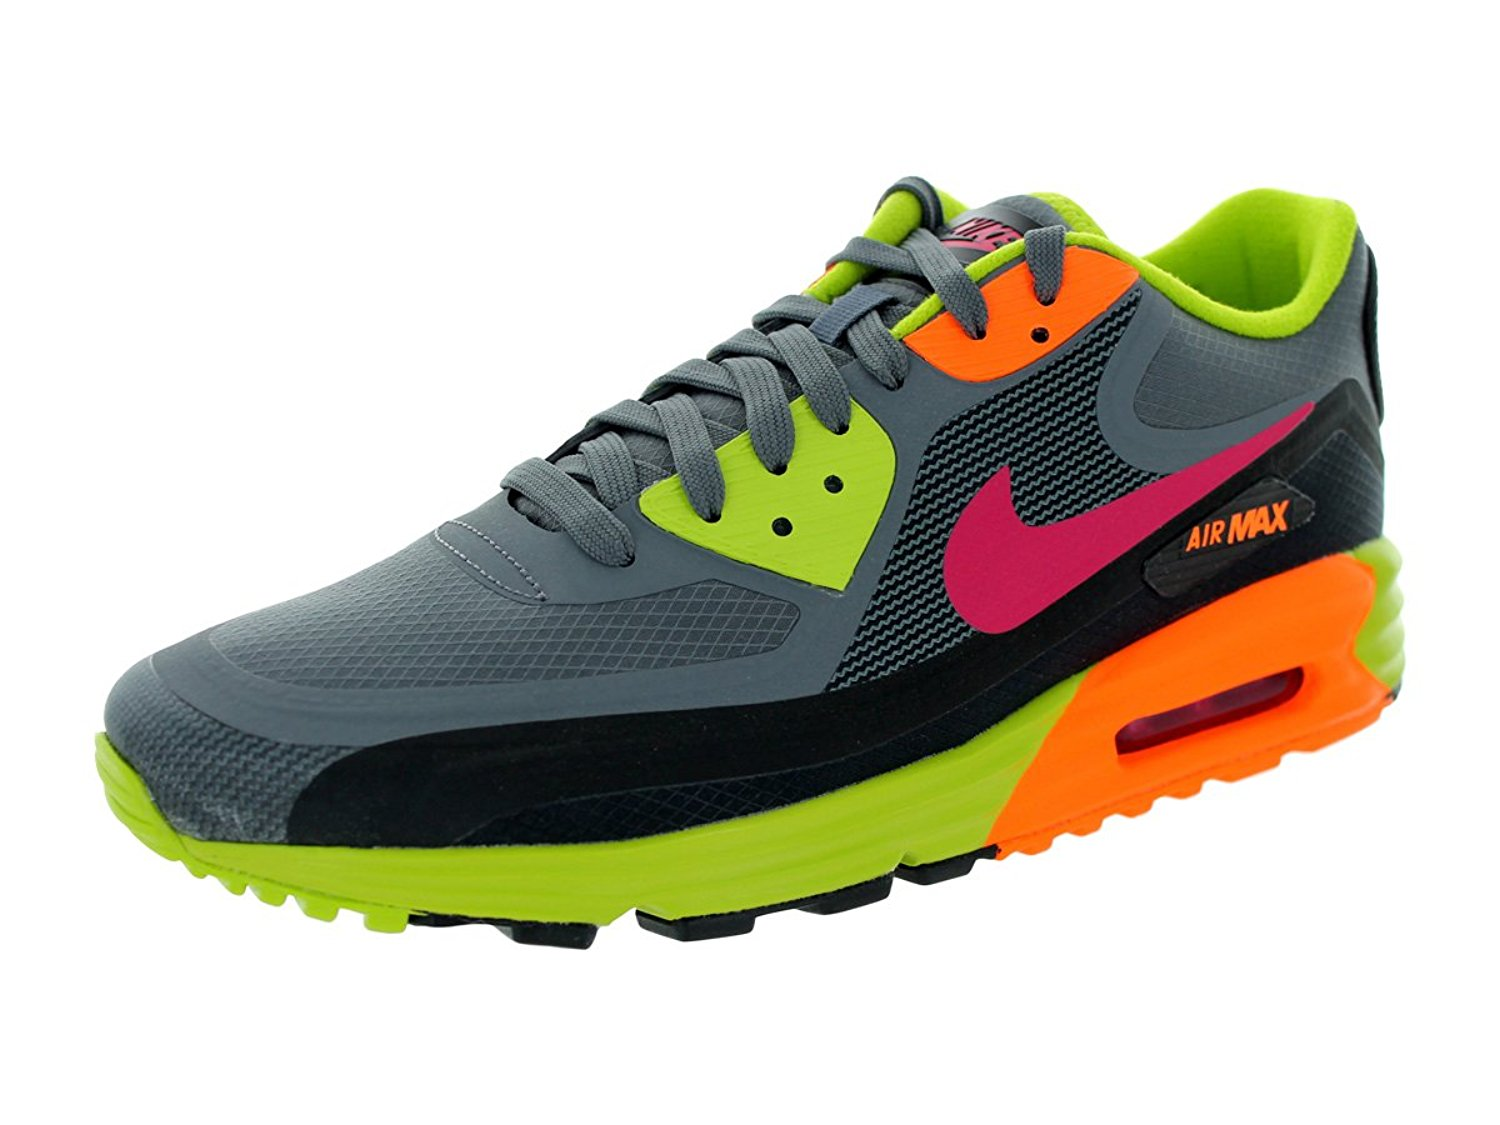 low priced 406c5 2d29b Get Quotations · Nike Men s Air Max Lunar90 Wr Running Shoe